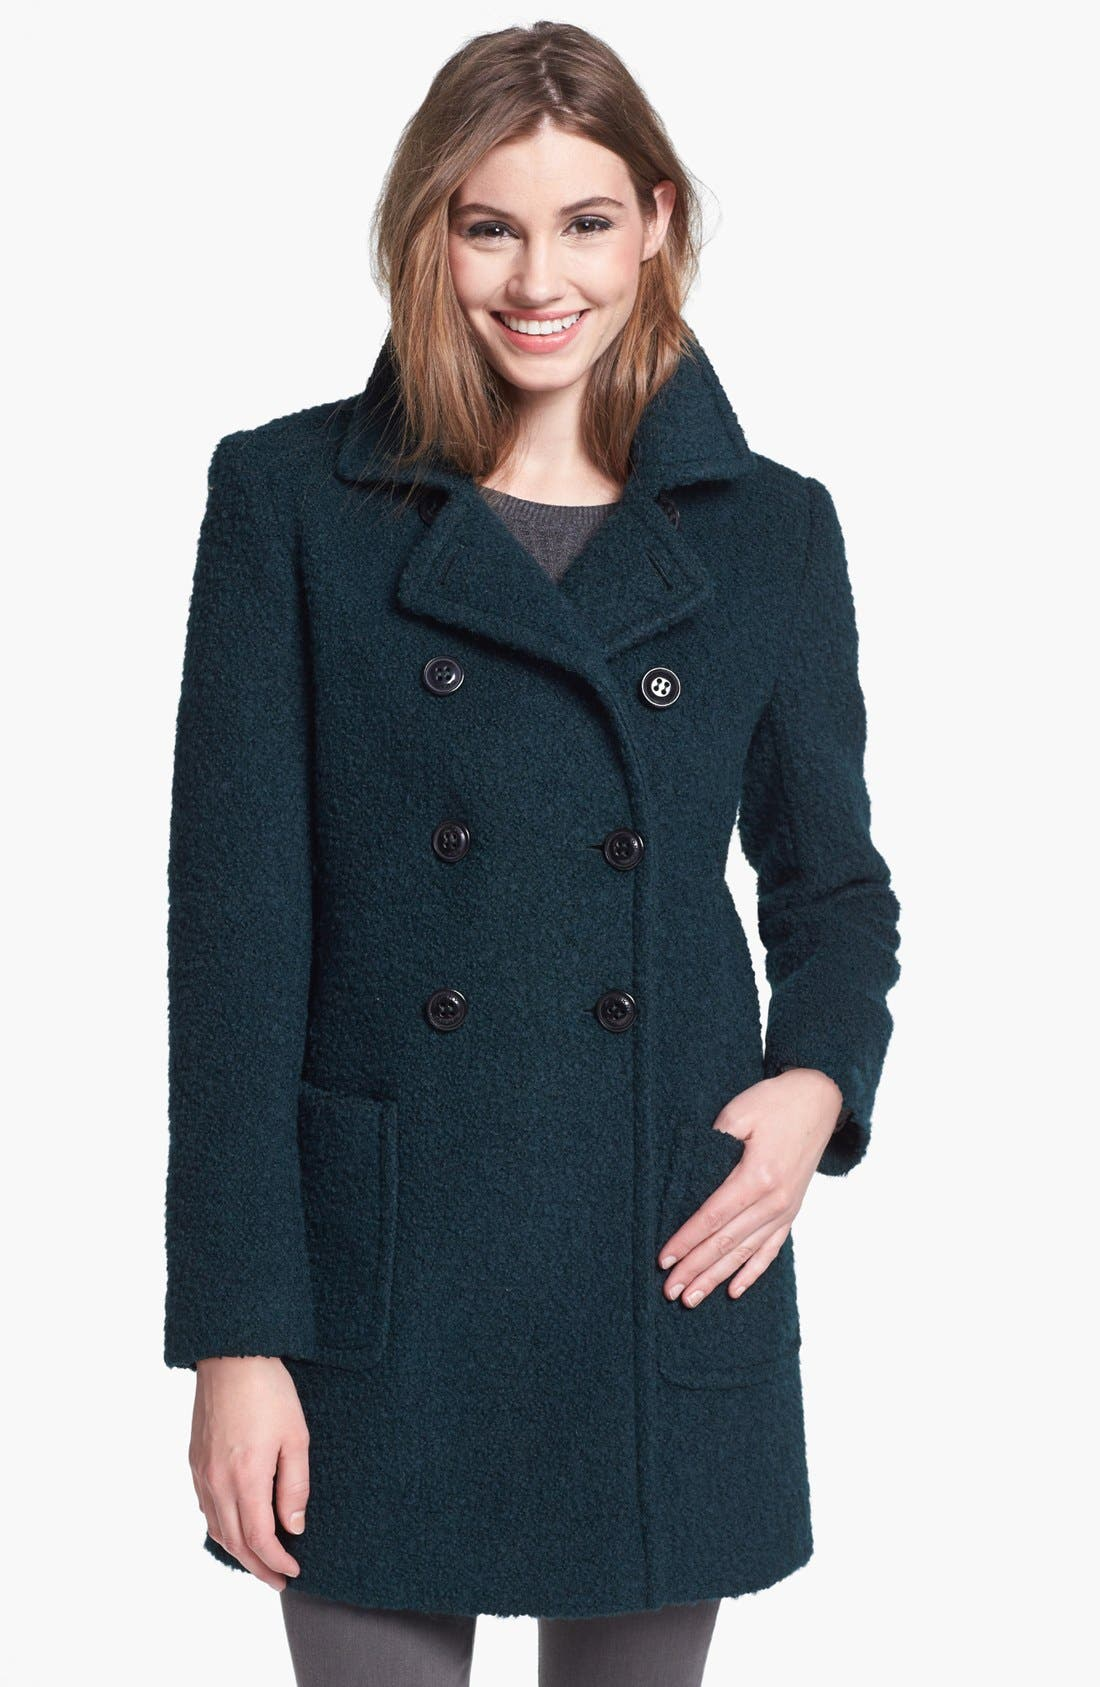 Alternate Image 1 Selected - DKNY Double Breasted Bouclé Coat (Regular & Petite)